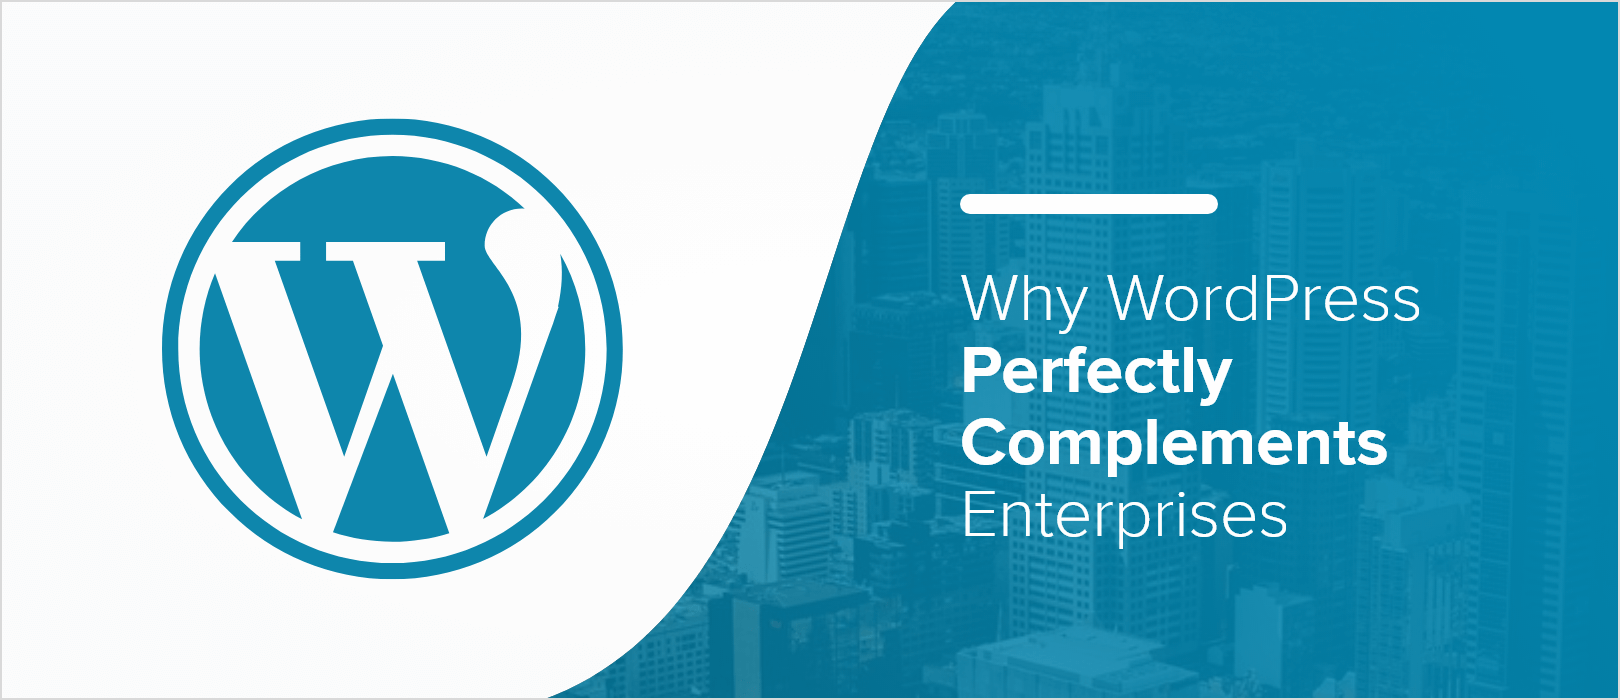 WordPress for enterprises